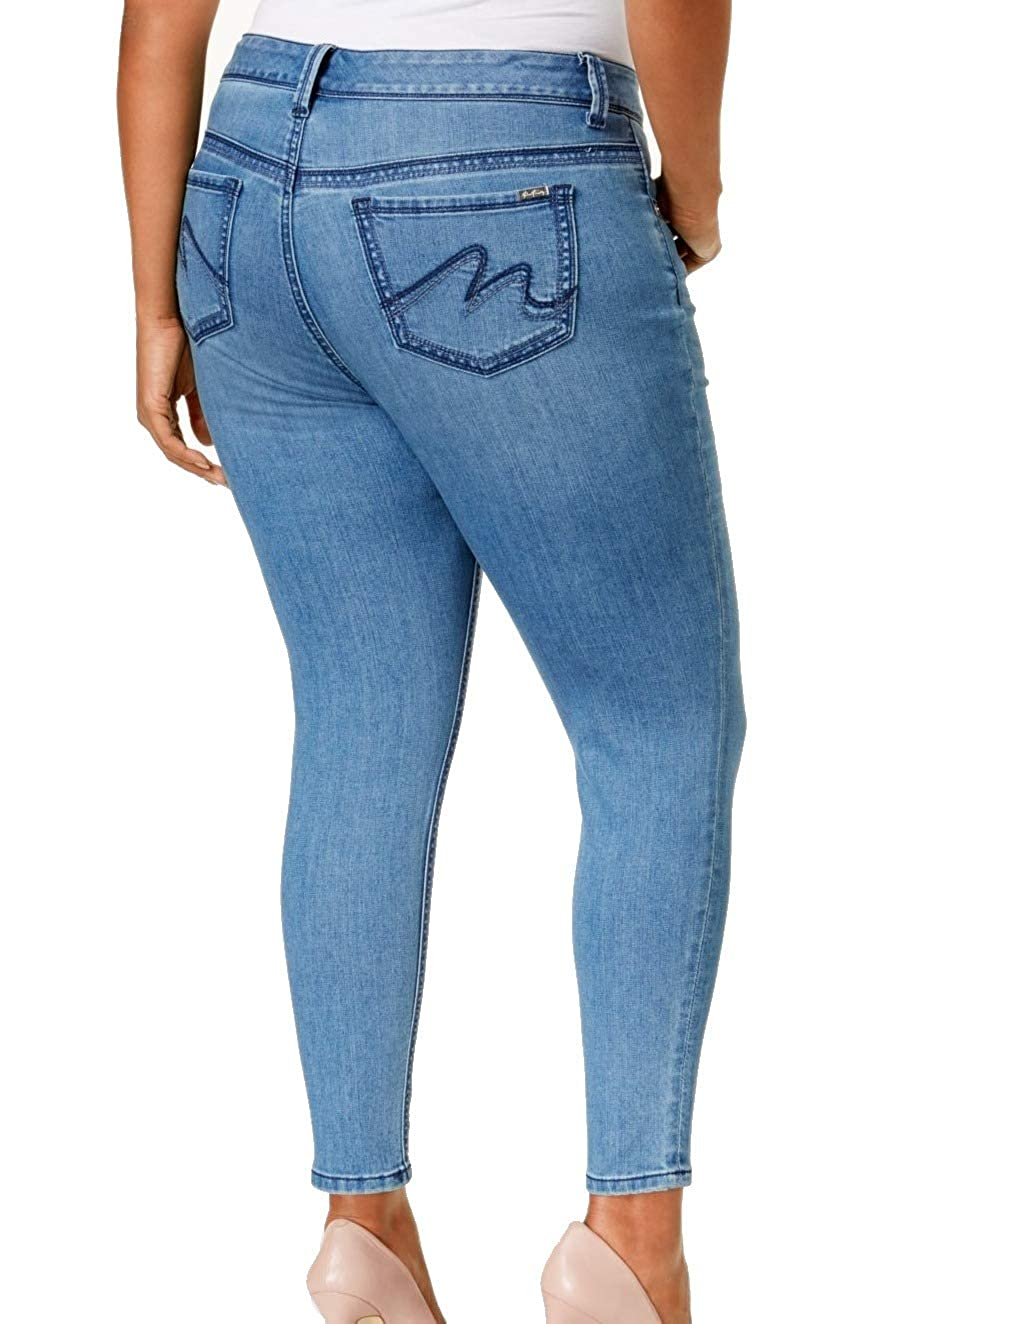 cfc6106fcb91d Melissa McCarthy Seven7 Womens Plus Slimming High Rise Pencil Jeans Blue 24  at Amazon Women s Clothing store